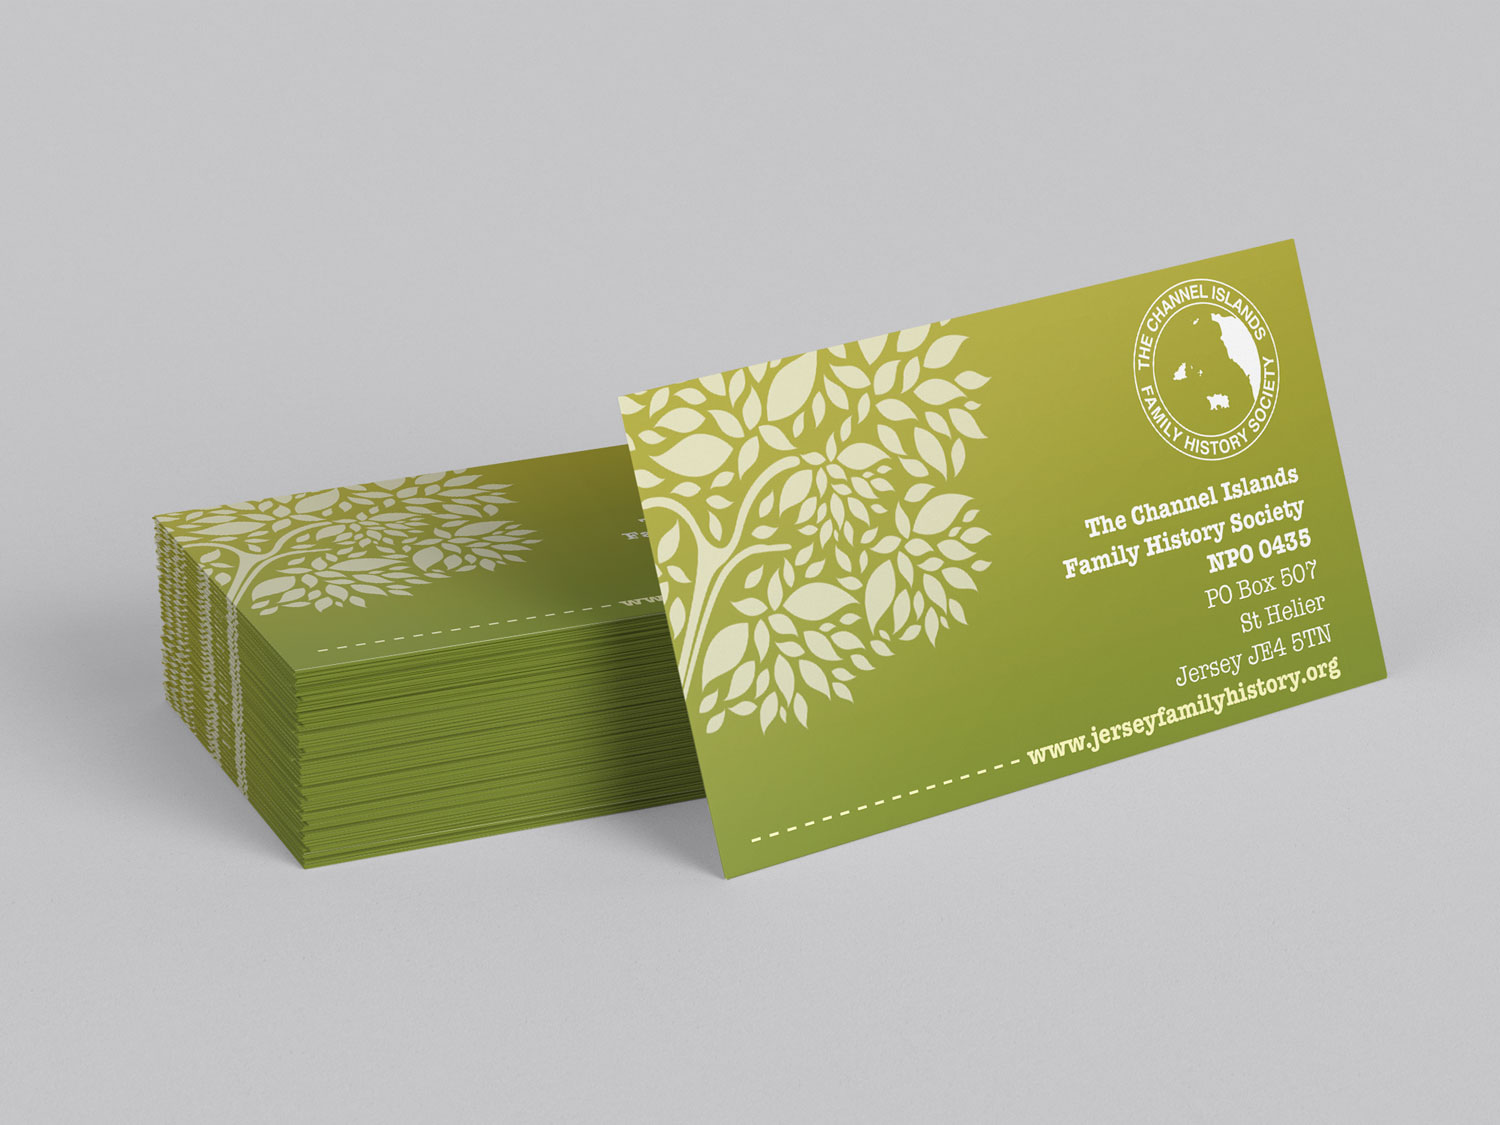 Traction Design - Business Cards for Jersey Company